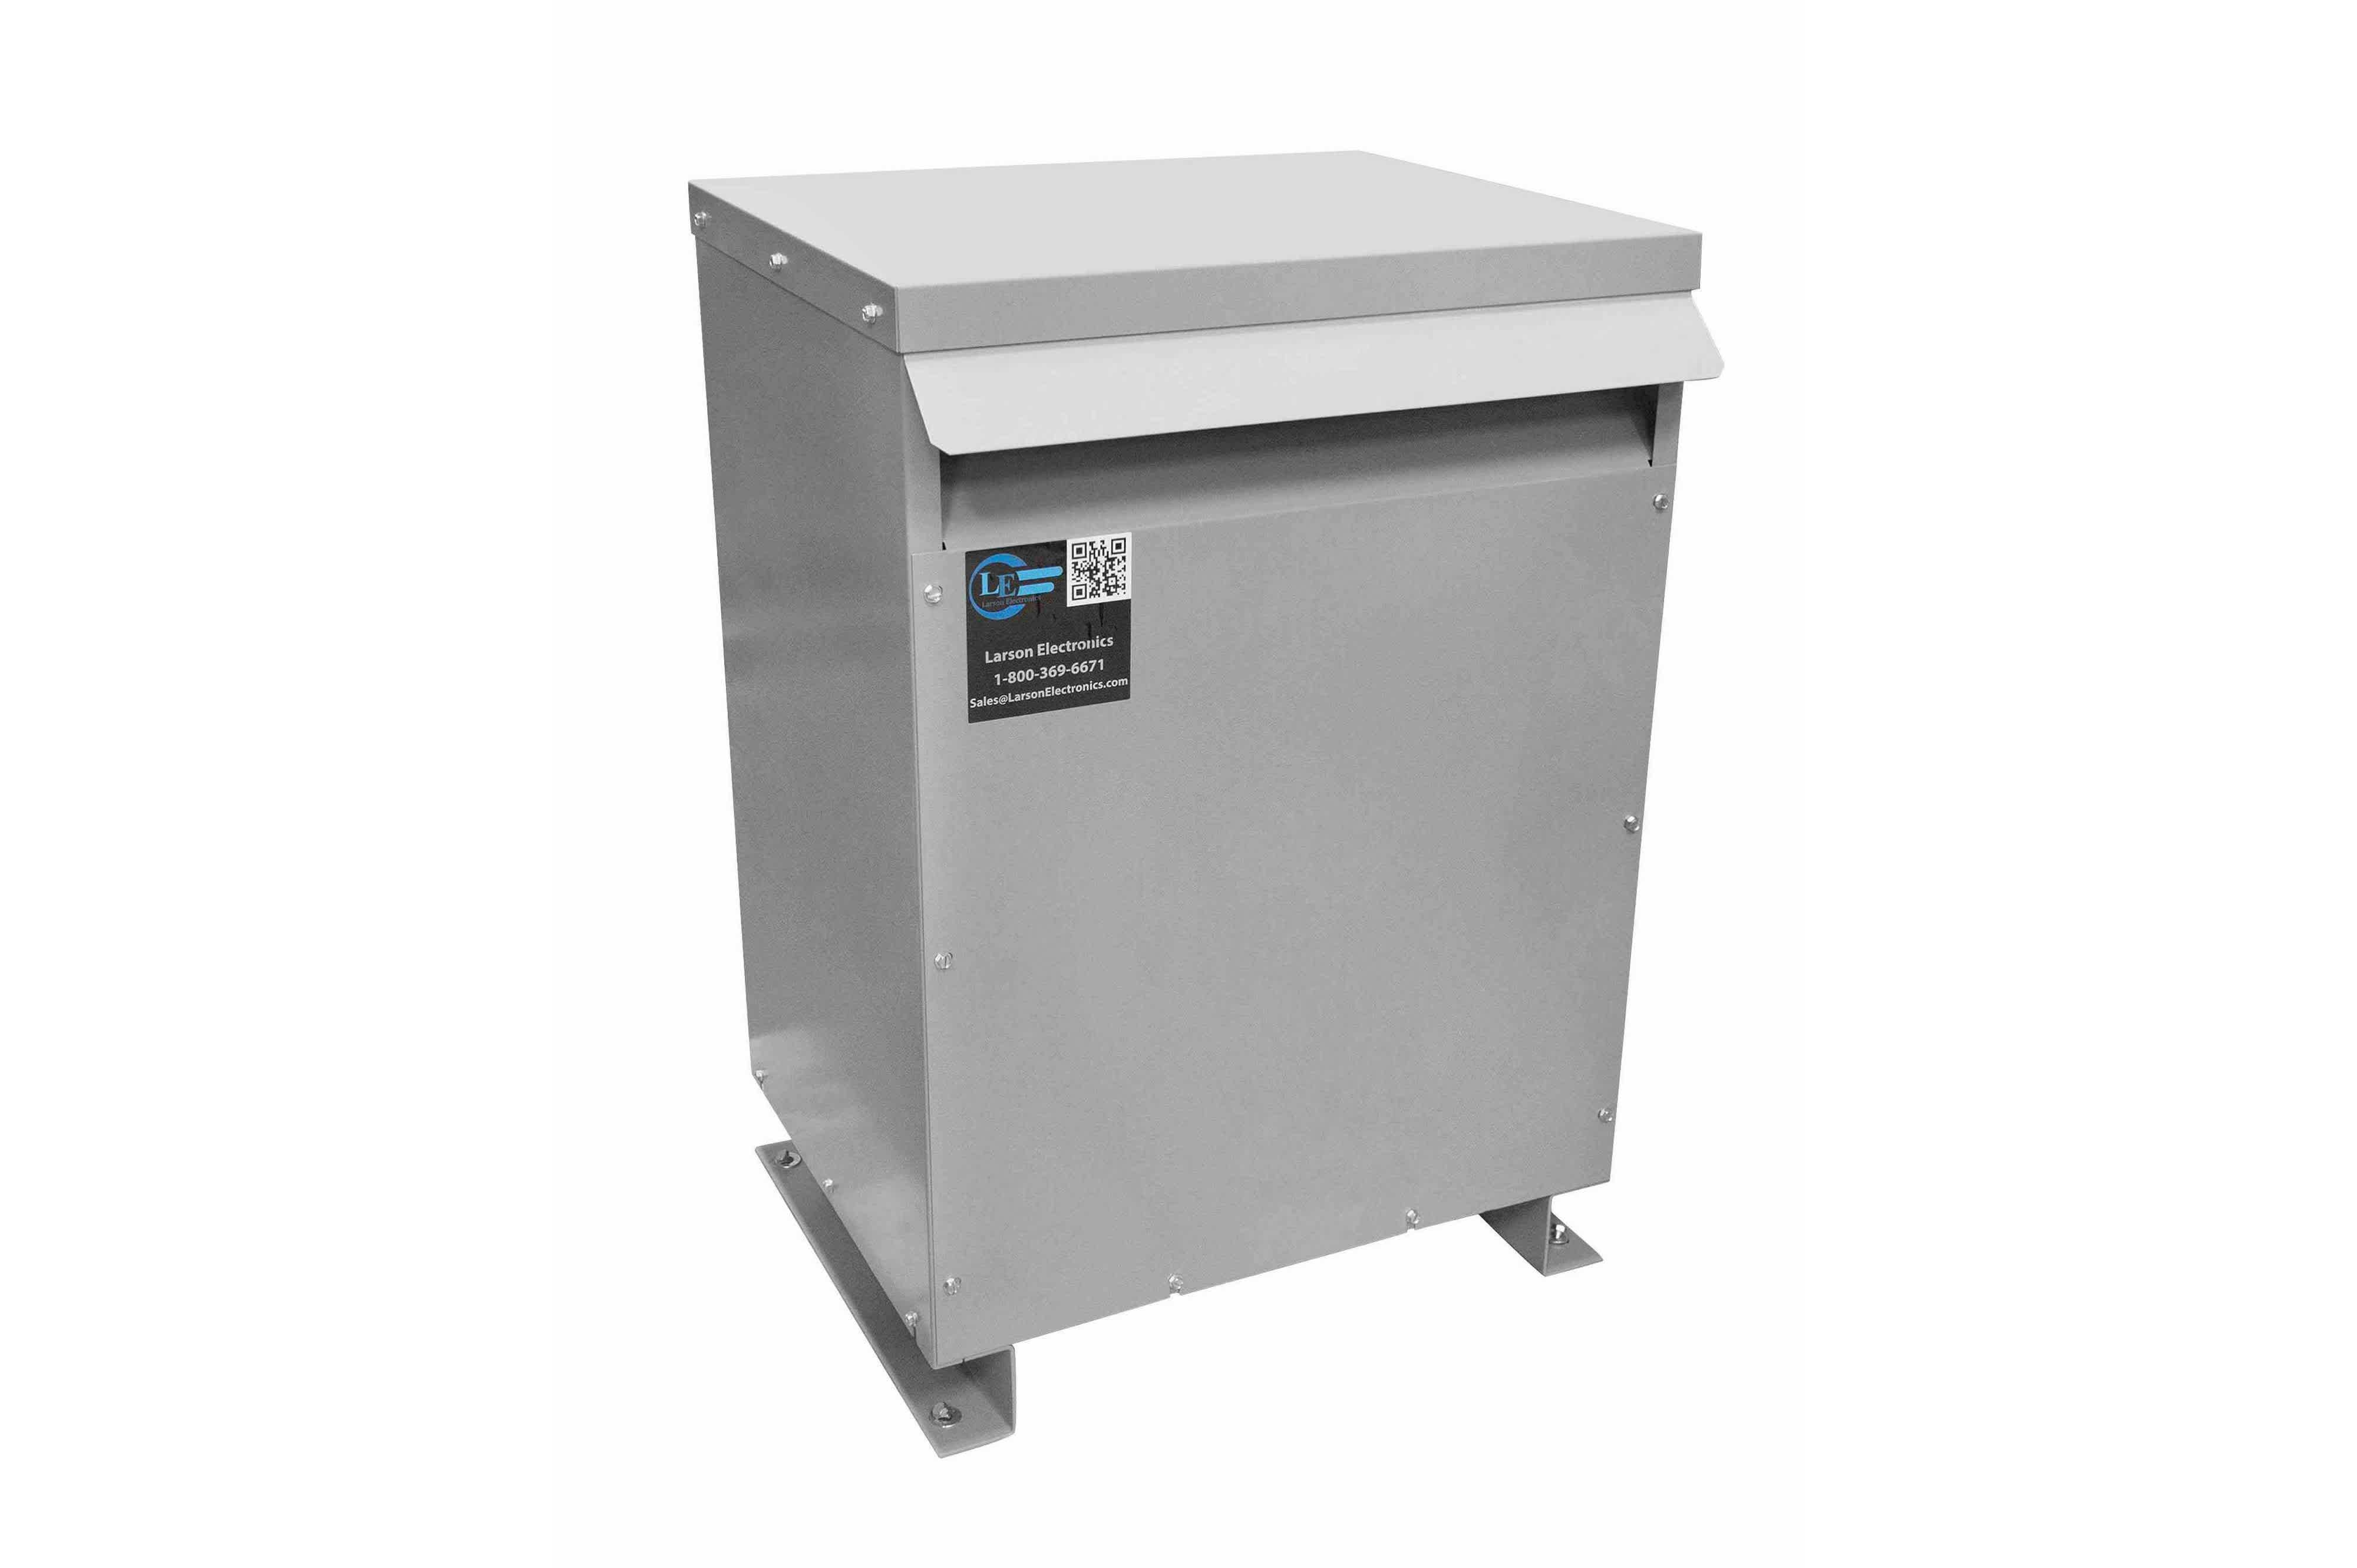 137.5 kVA 3PH Isolation Transformer, 575V Wye Primary, 480Y/277 Wye-N Secondary, N3R, Ventilated, 60 Hz